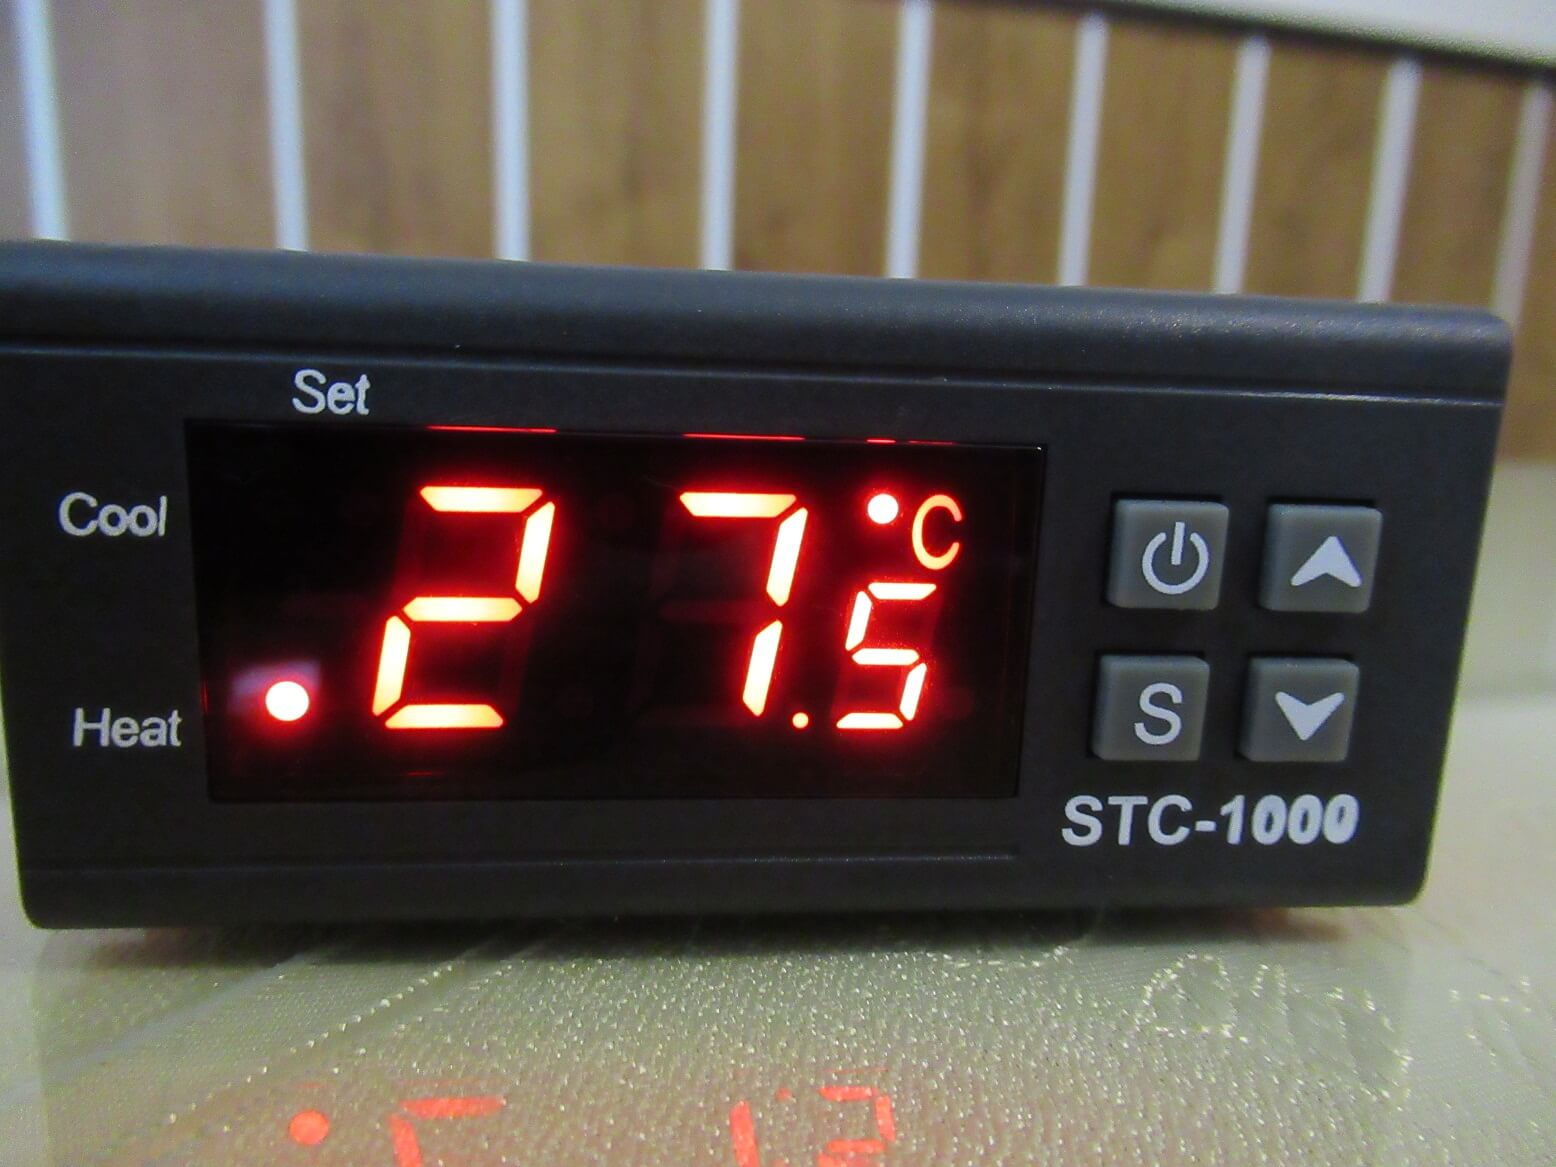 hight resolution of stc 1000 temperature controller with 2x relay for heating cooling